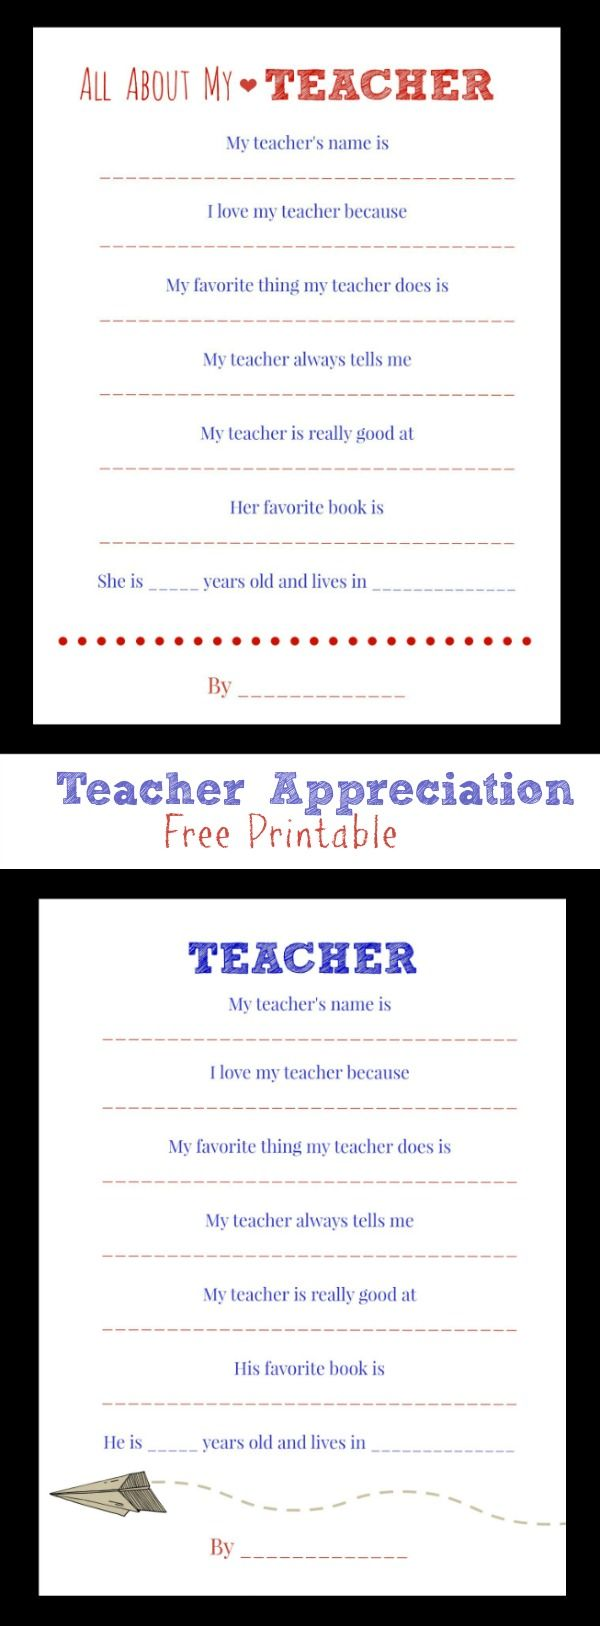 best ideas about teacher questionnaire teacher gifts teachers appreciate